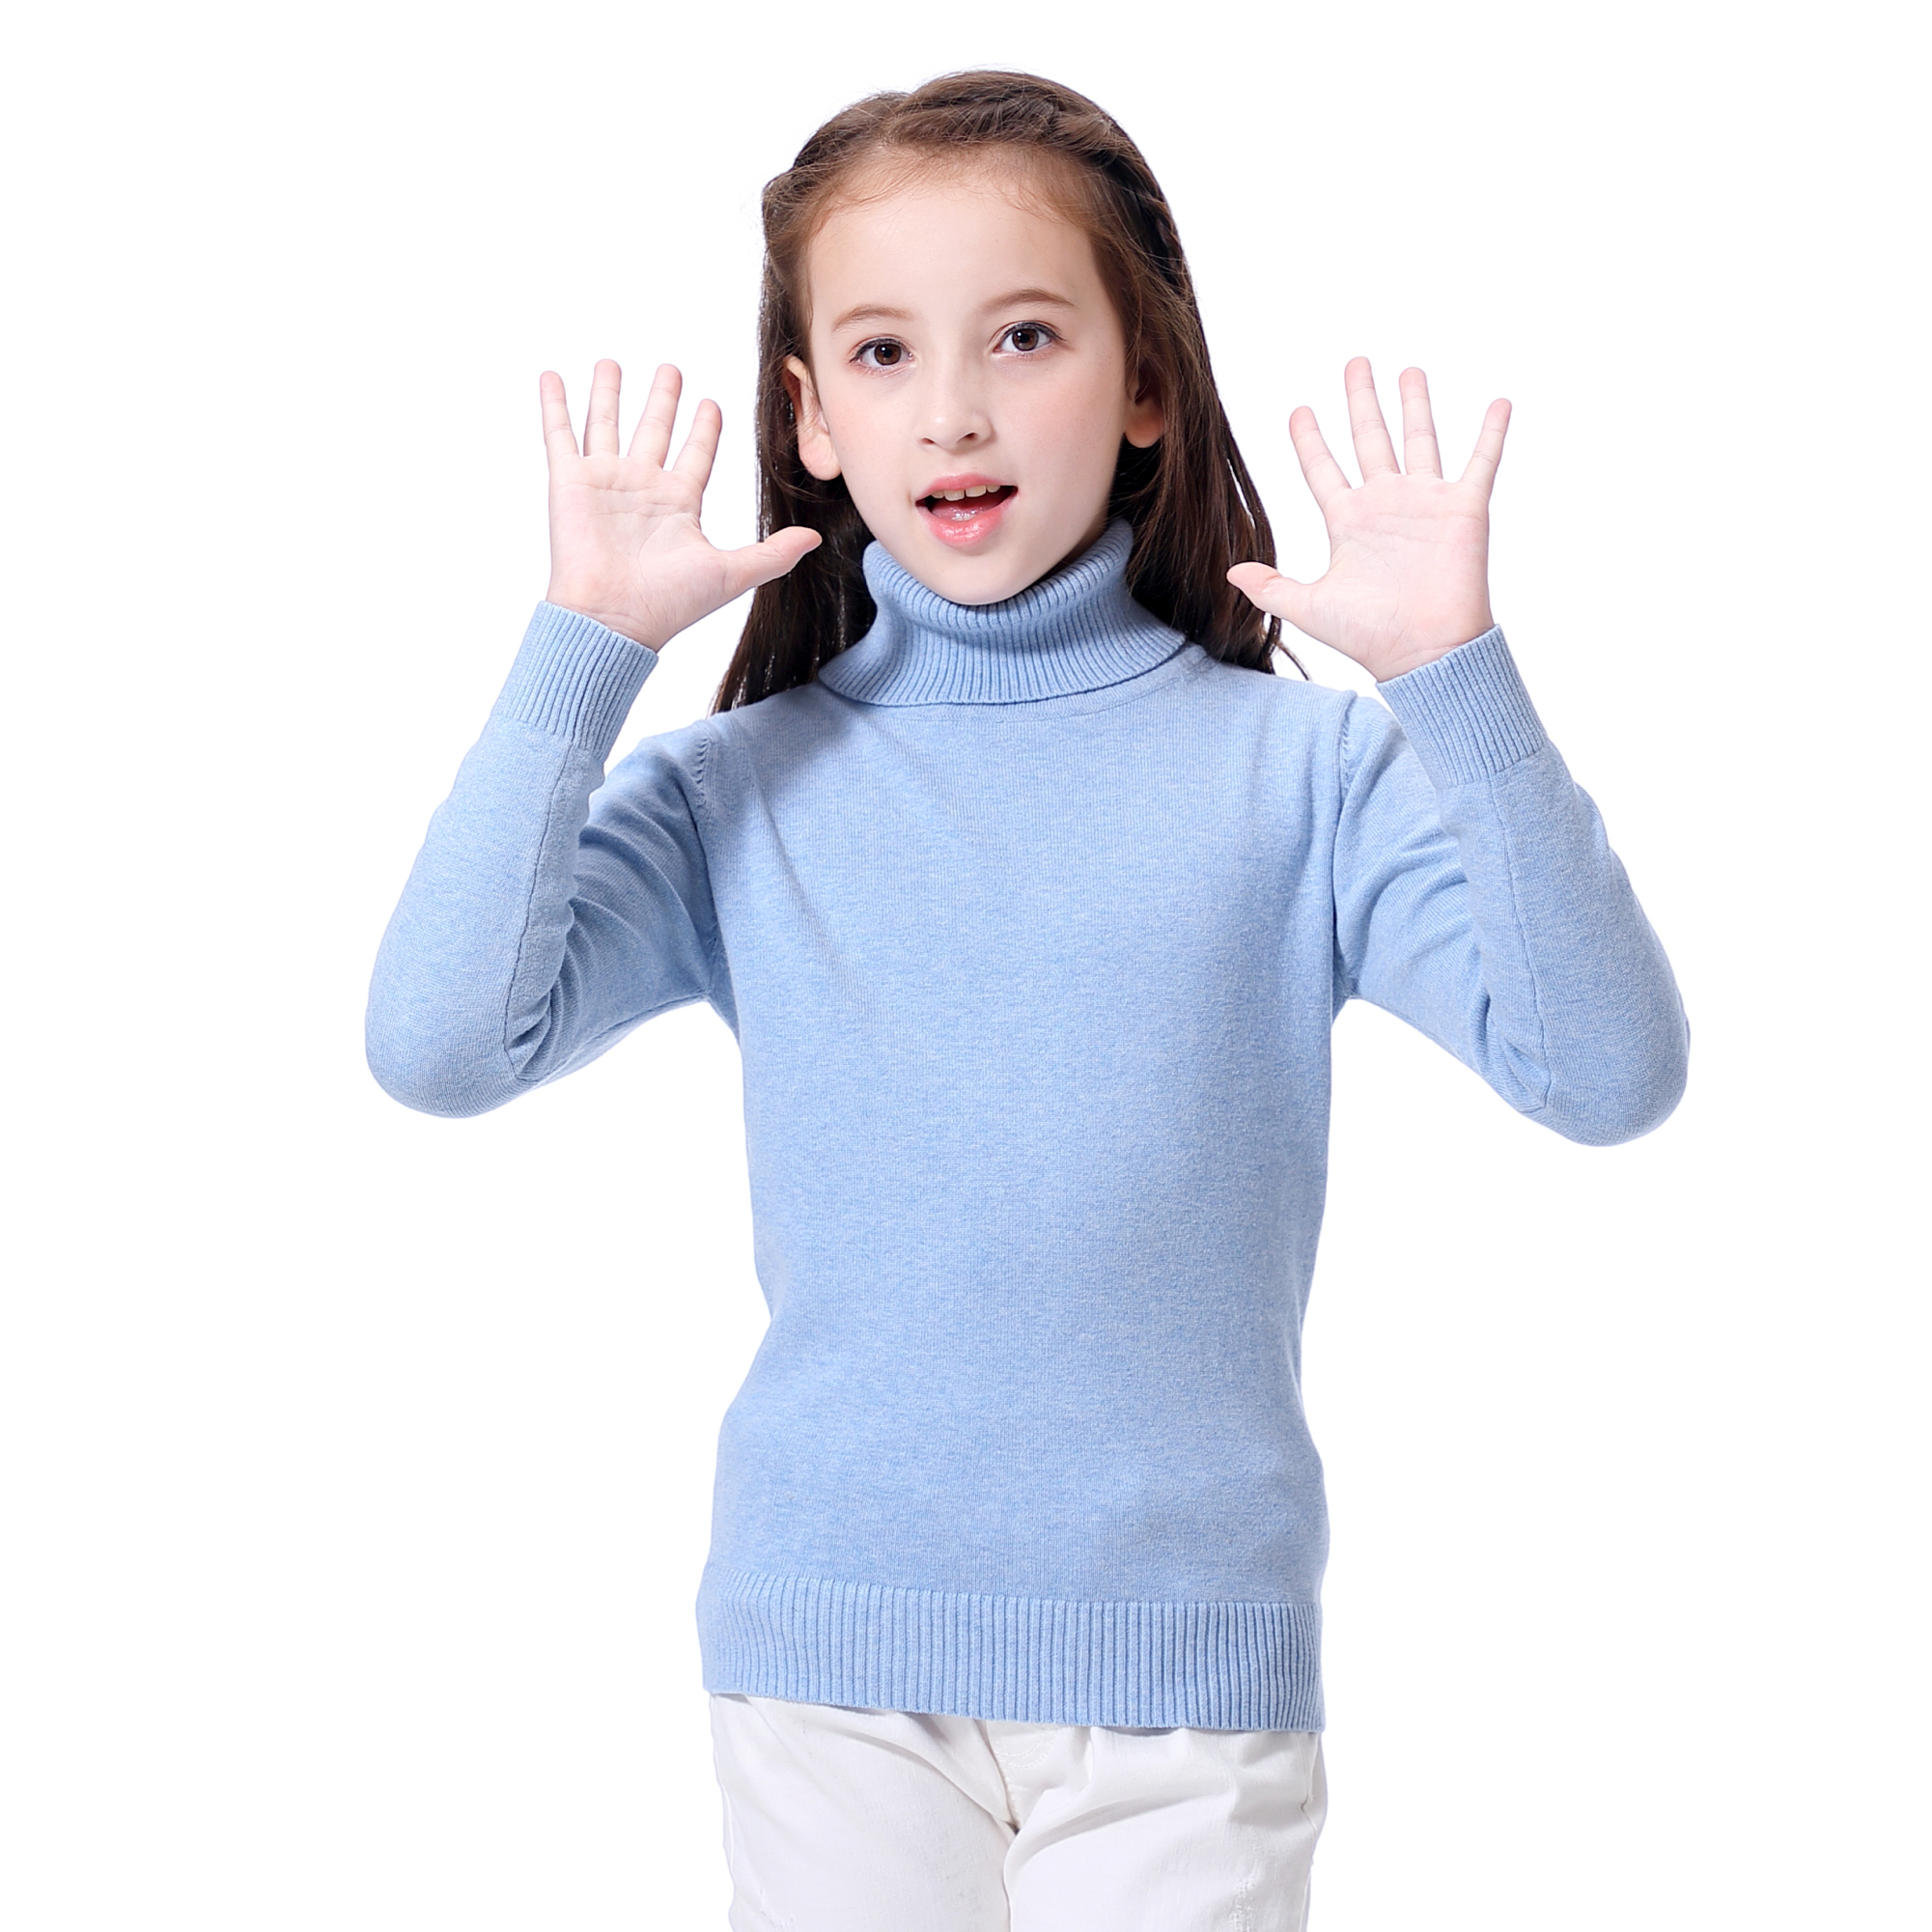 KID1234 Boys Long Sleeve Turtleneck Sweater High Collar Crew Neck Pullover Casual Knit Cotton Warm Sweater